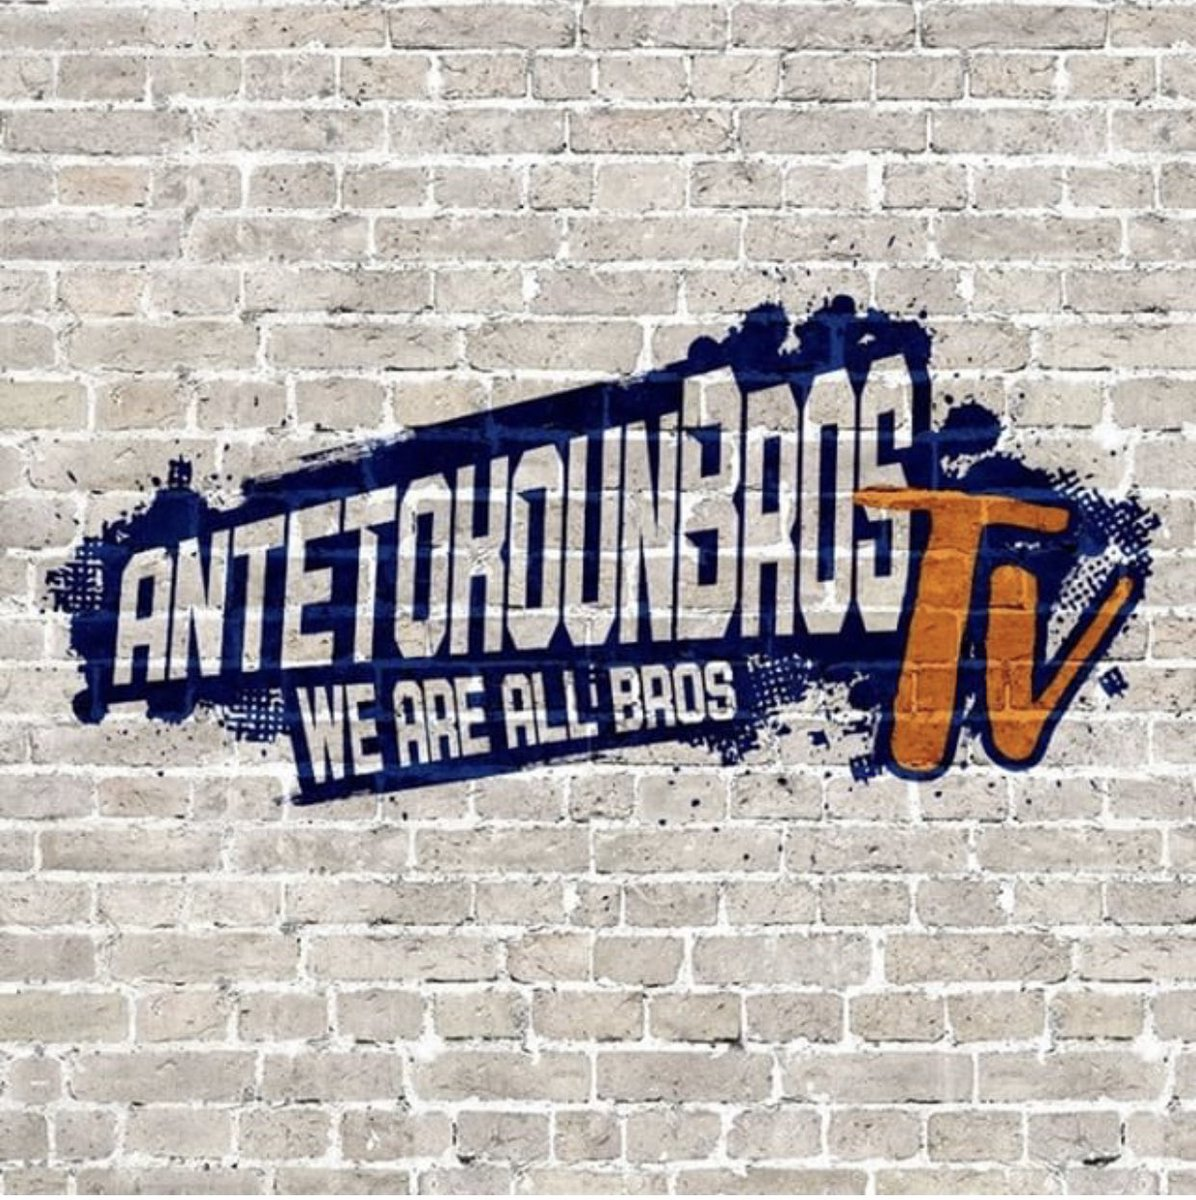 Hey guys go follow our AntetokounbrosTV account on IG and YouTube for everything Antetokounbros! Funny videos, interviews, behind-the-scenes clips, highlights and more of my brothers and me. @Thanasis_ante43 @Kostas_ante13 @Alex_ante29